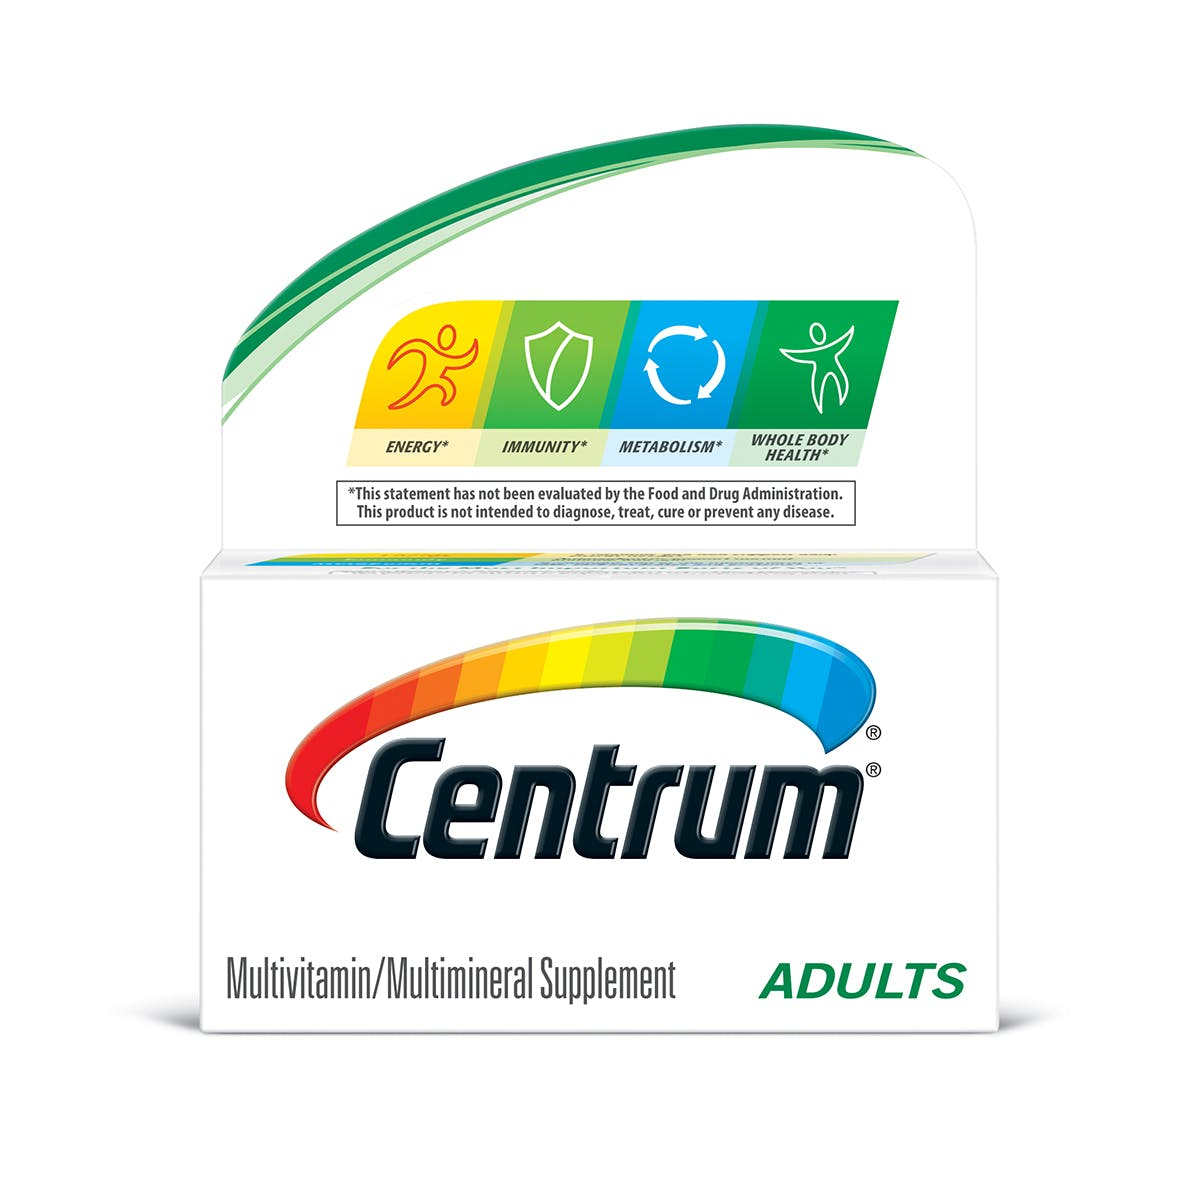 Centrum Adults multivitamins - previous packaging